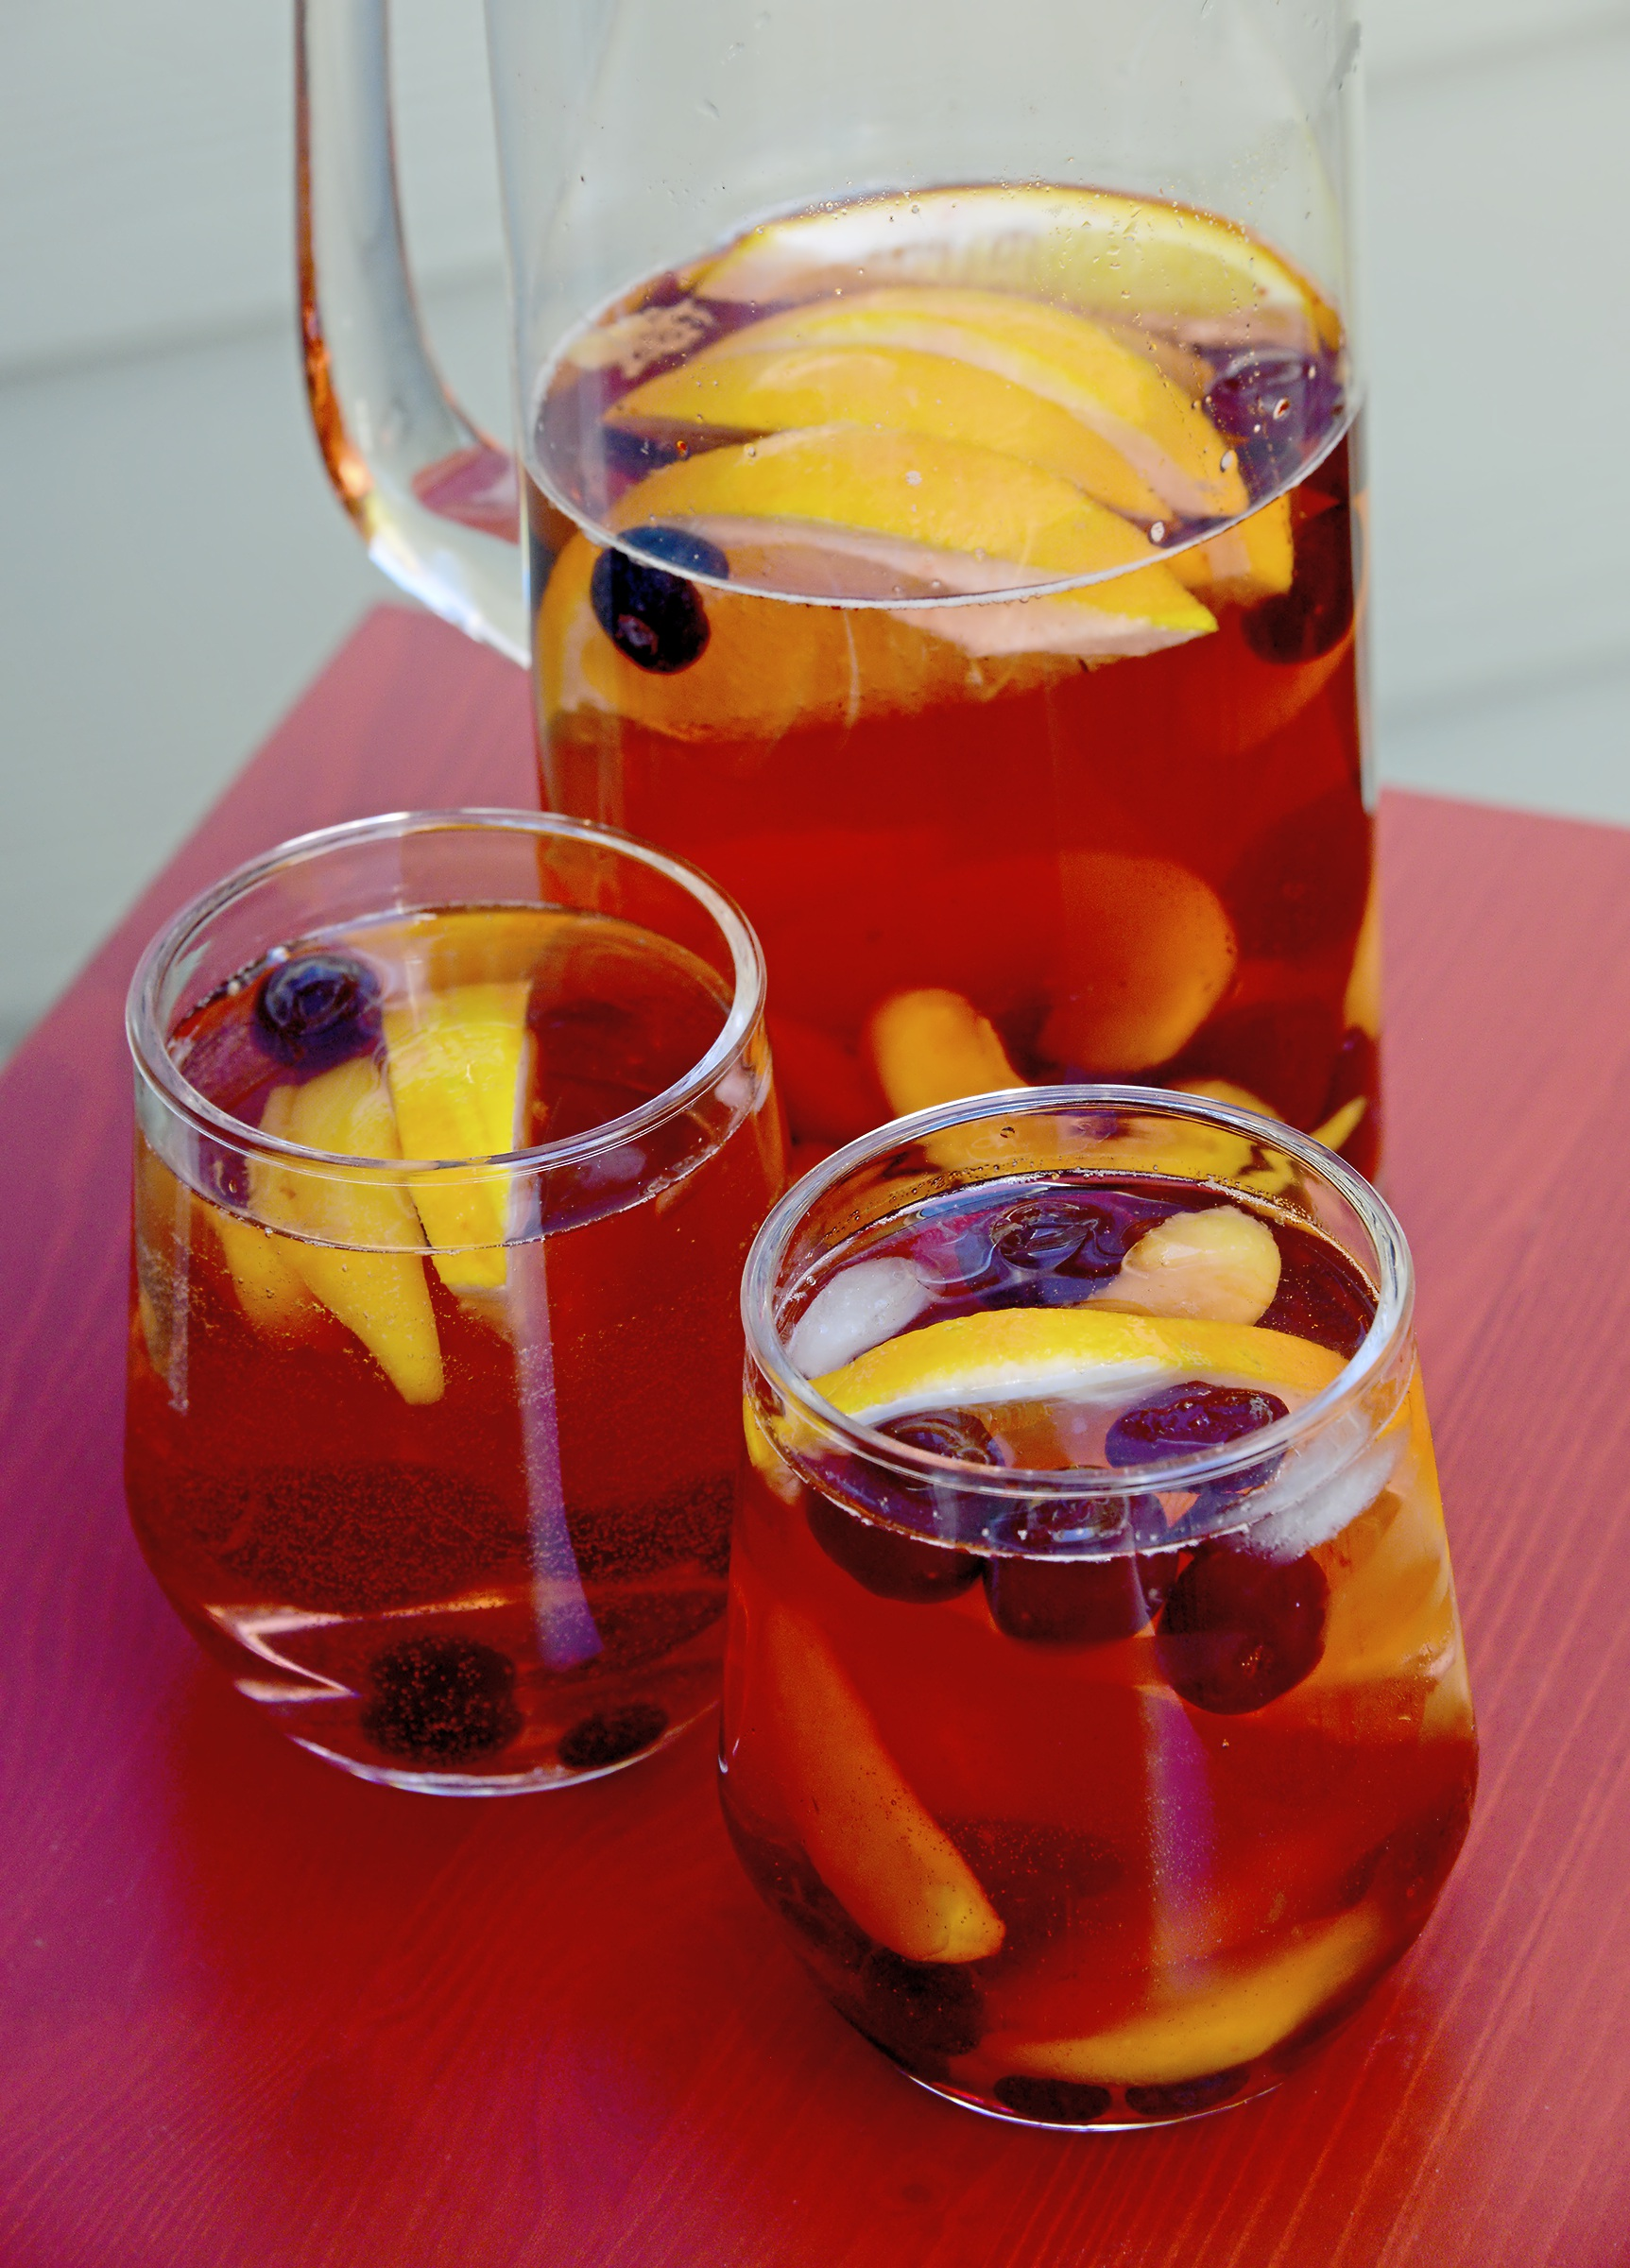 """20171109lf-Thanksgiving09-8 Rose sangria with cherries is from """"Cherry Bombe: The Cookbook"""" by Kerry Diamond and Claudia Wu."""